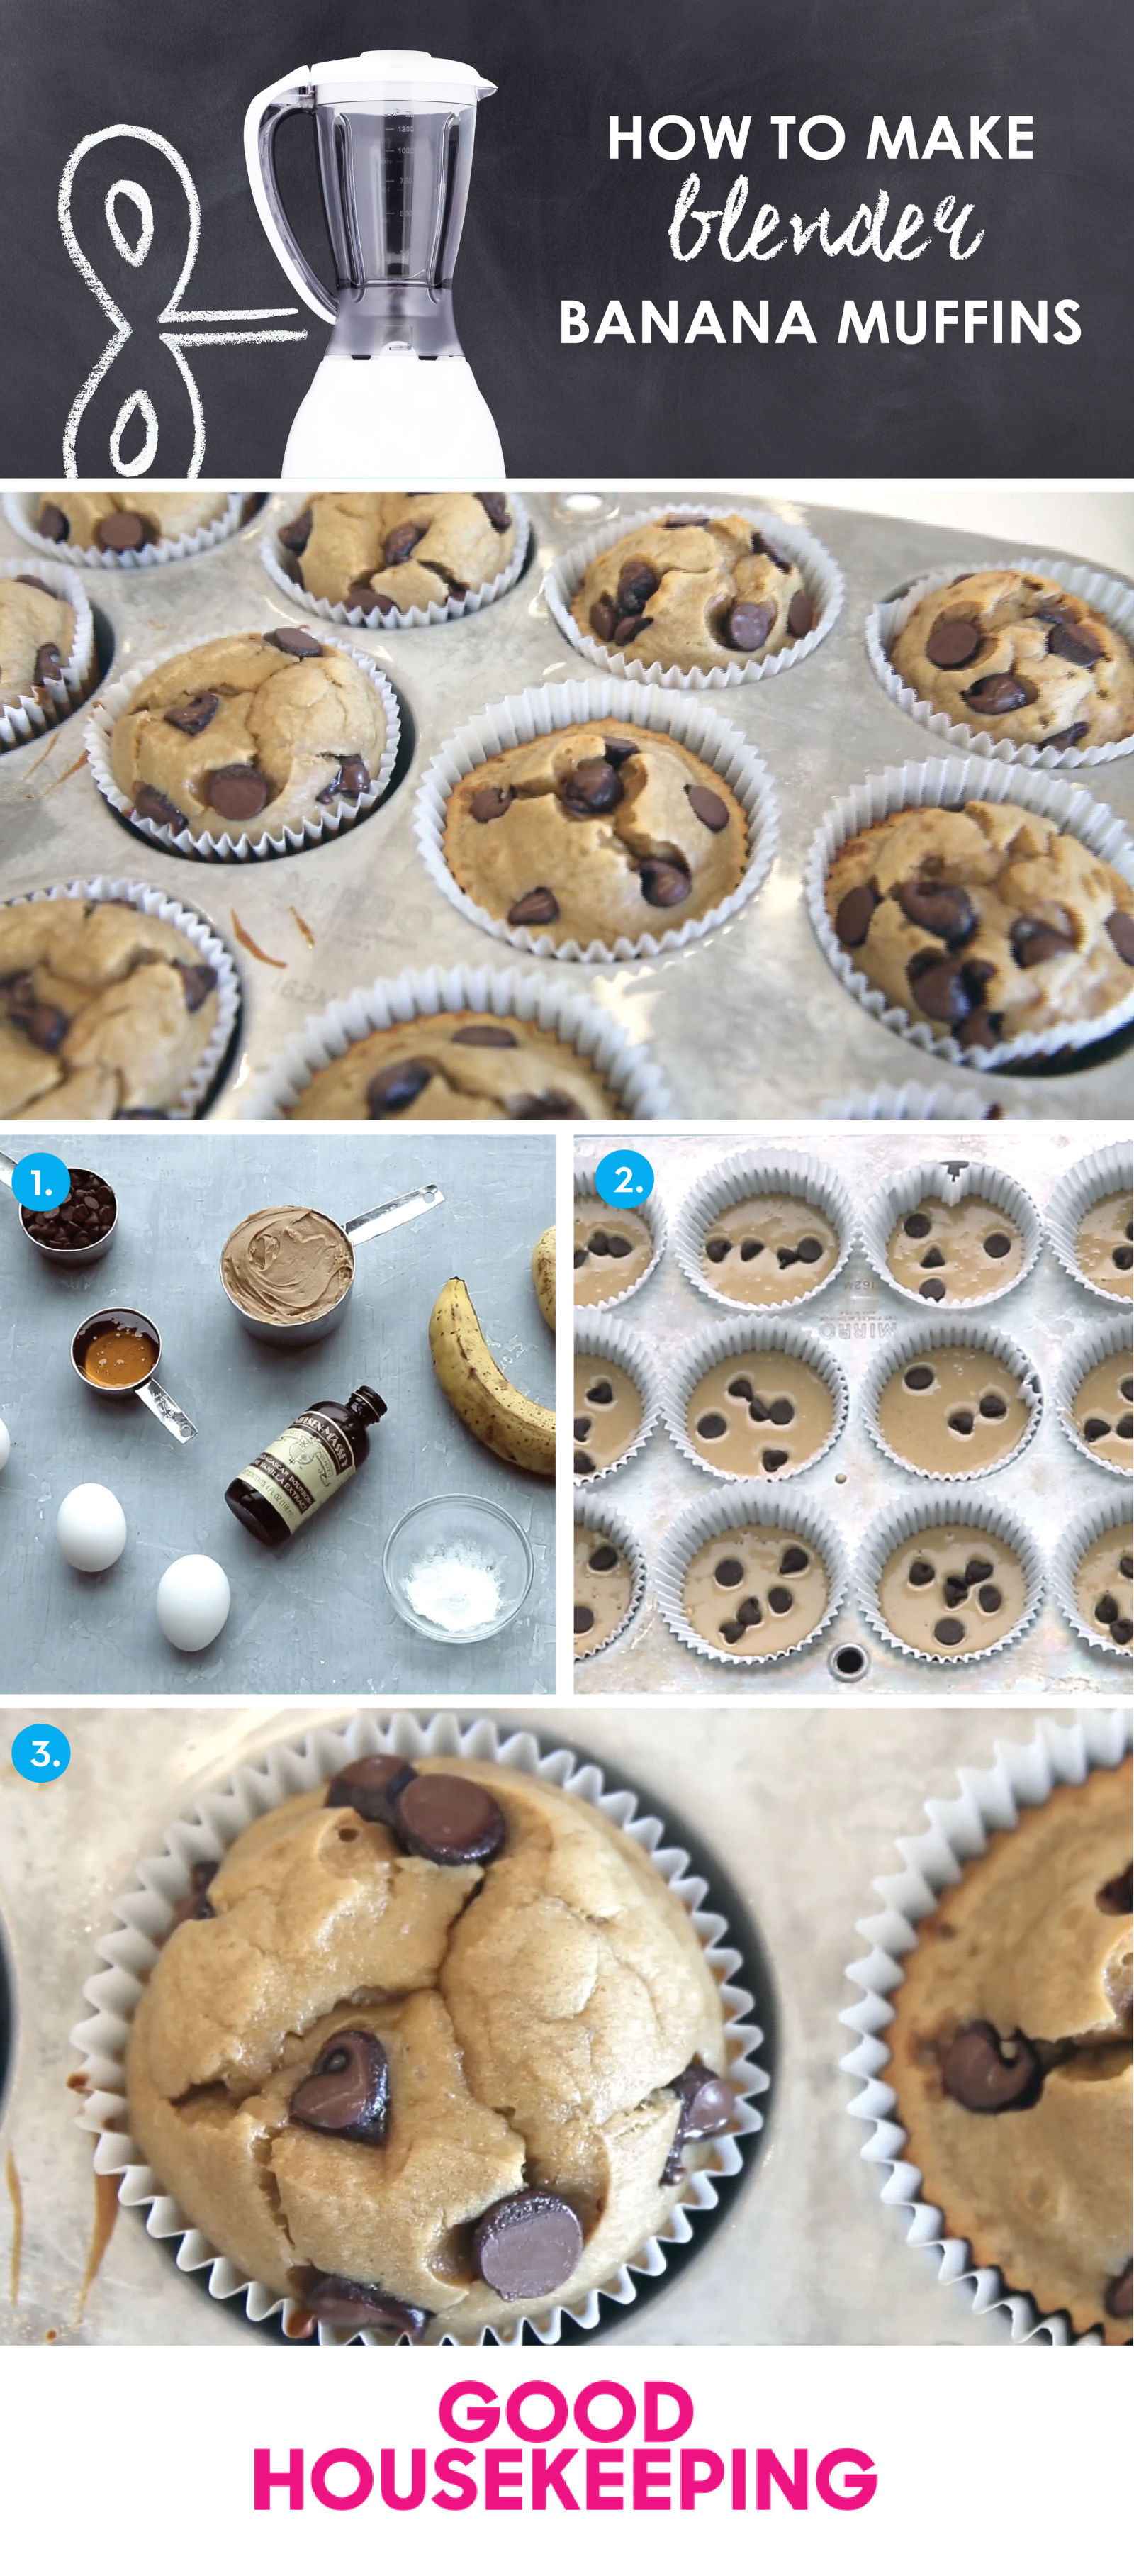 Learn how to make banana muffins in the blender